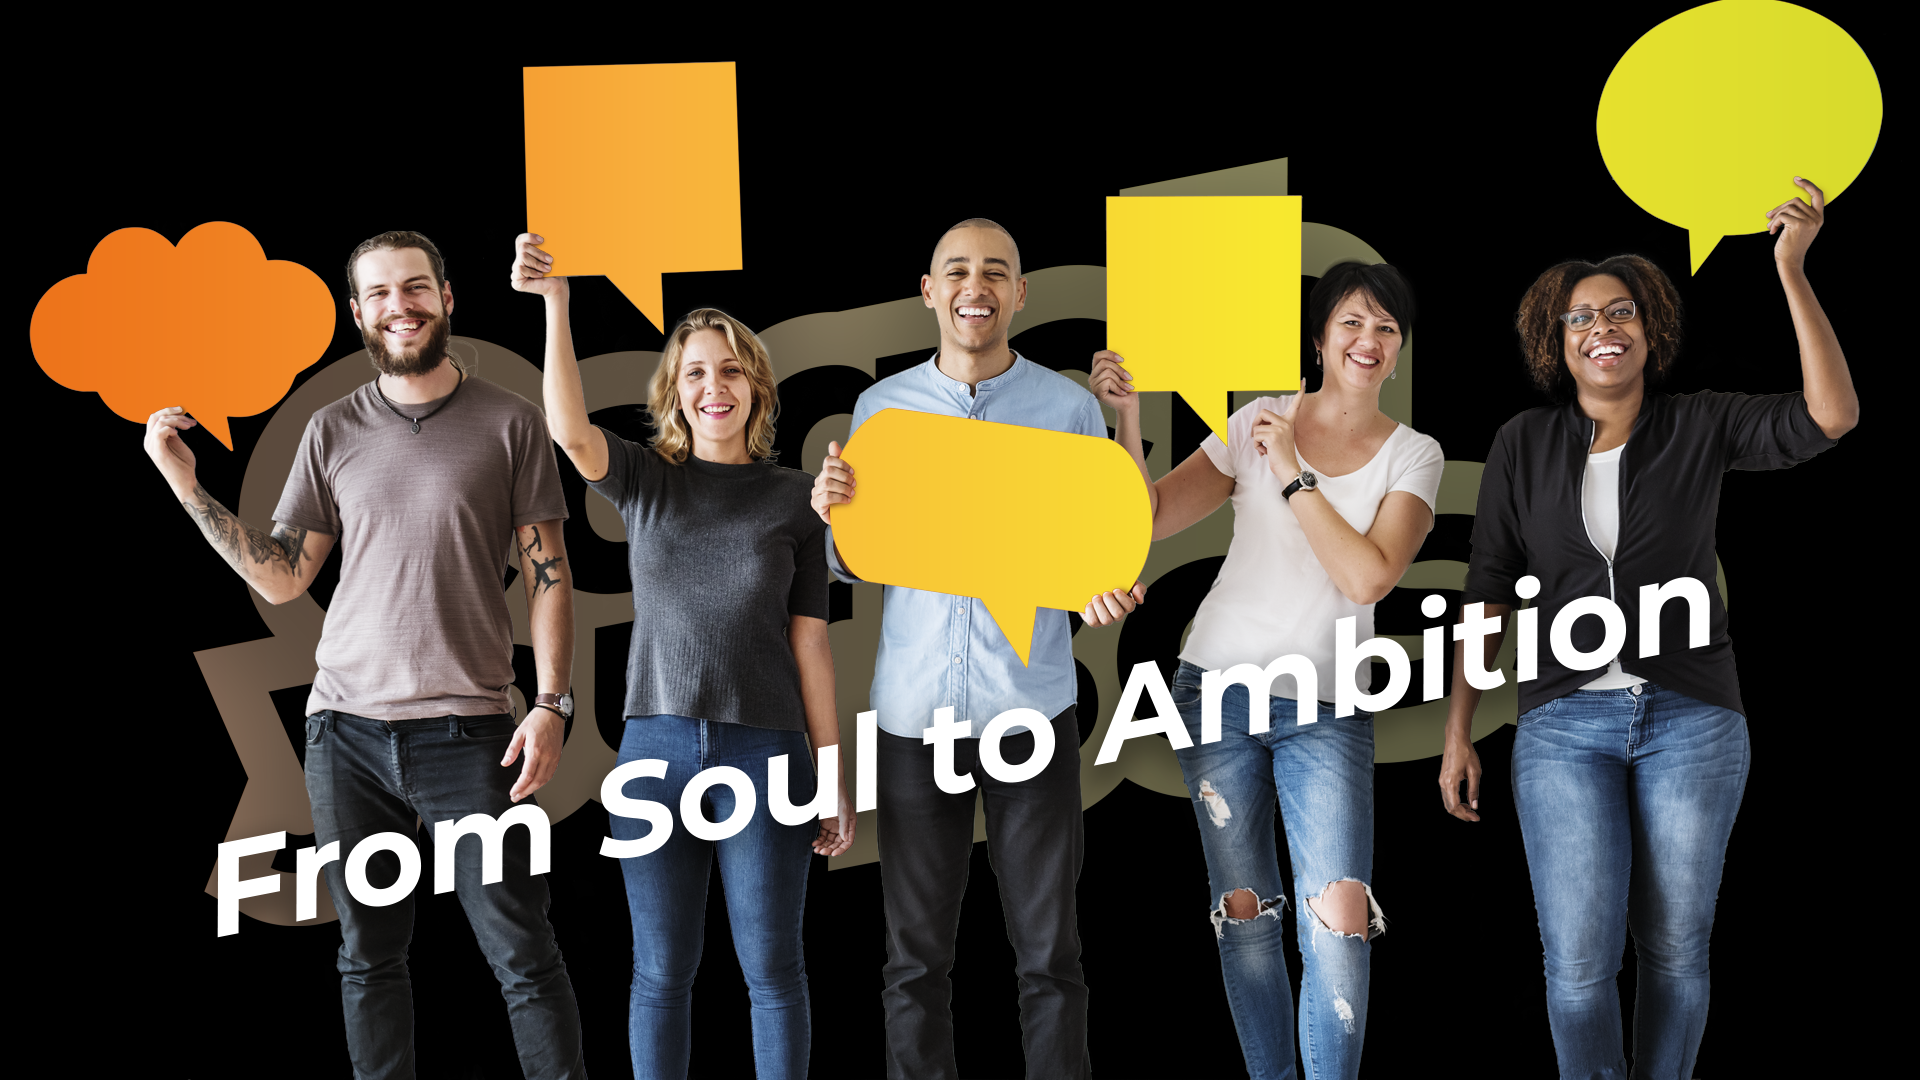 From Soul to Ambition